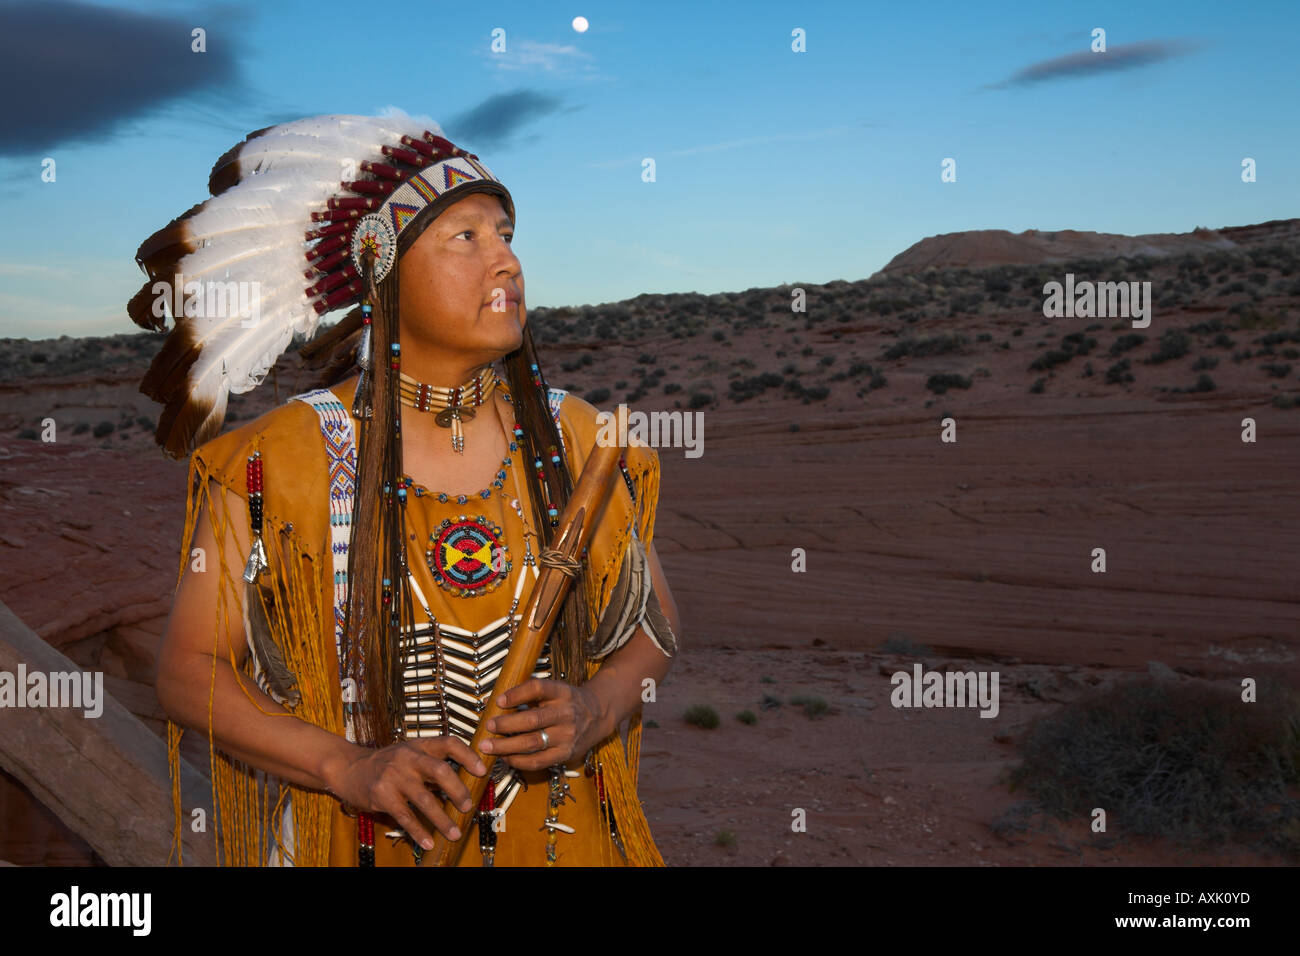 Native American Indian man person with cultural outfit uniform headdress feathers design patterns blue sky nature plants Chief - Stock Image